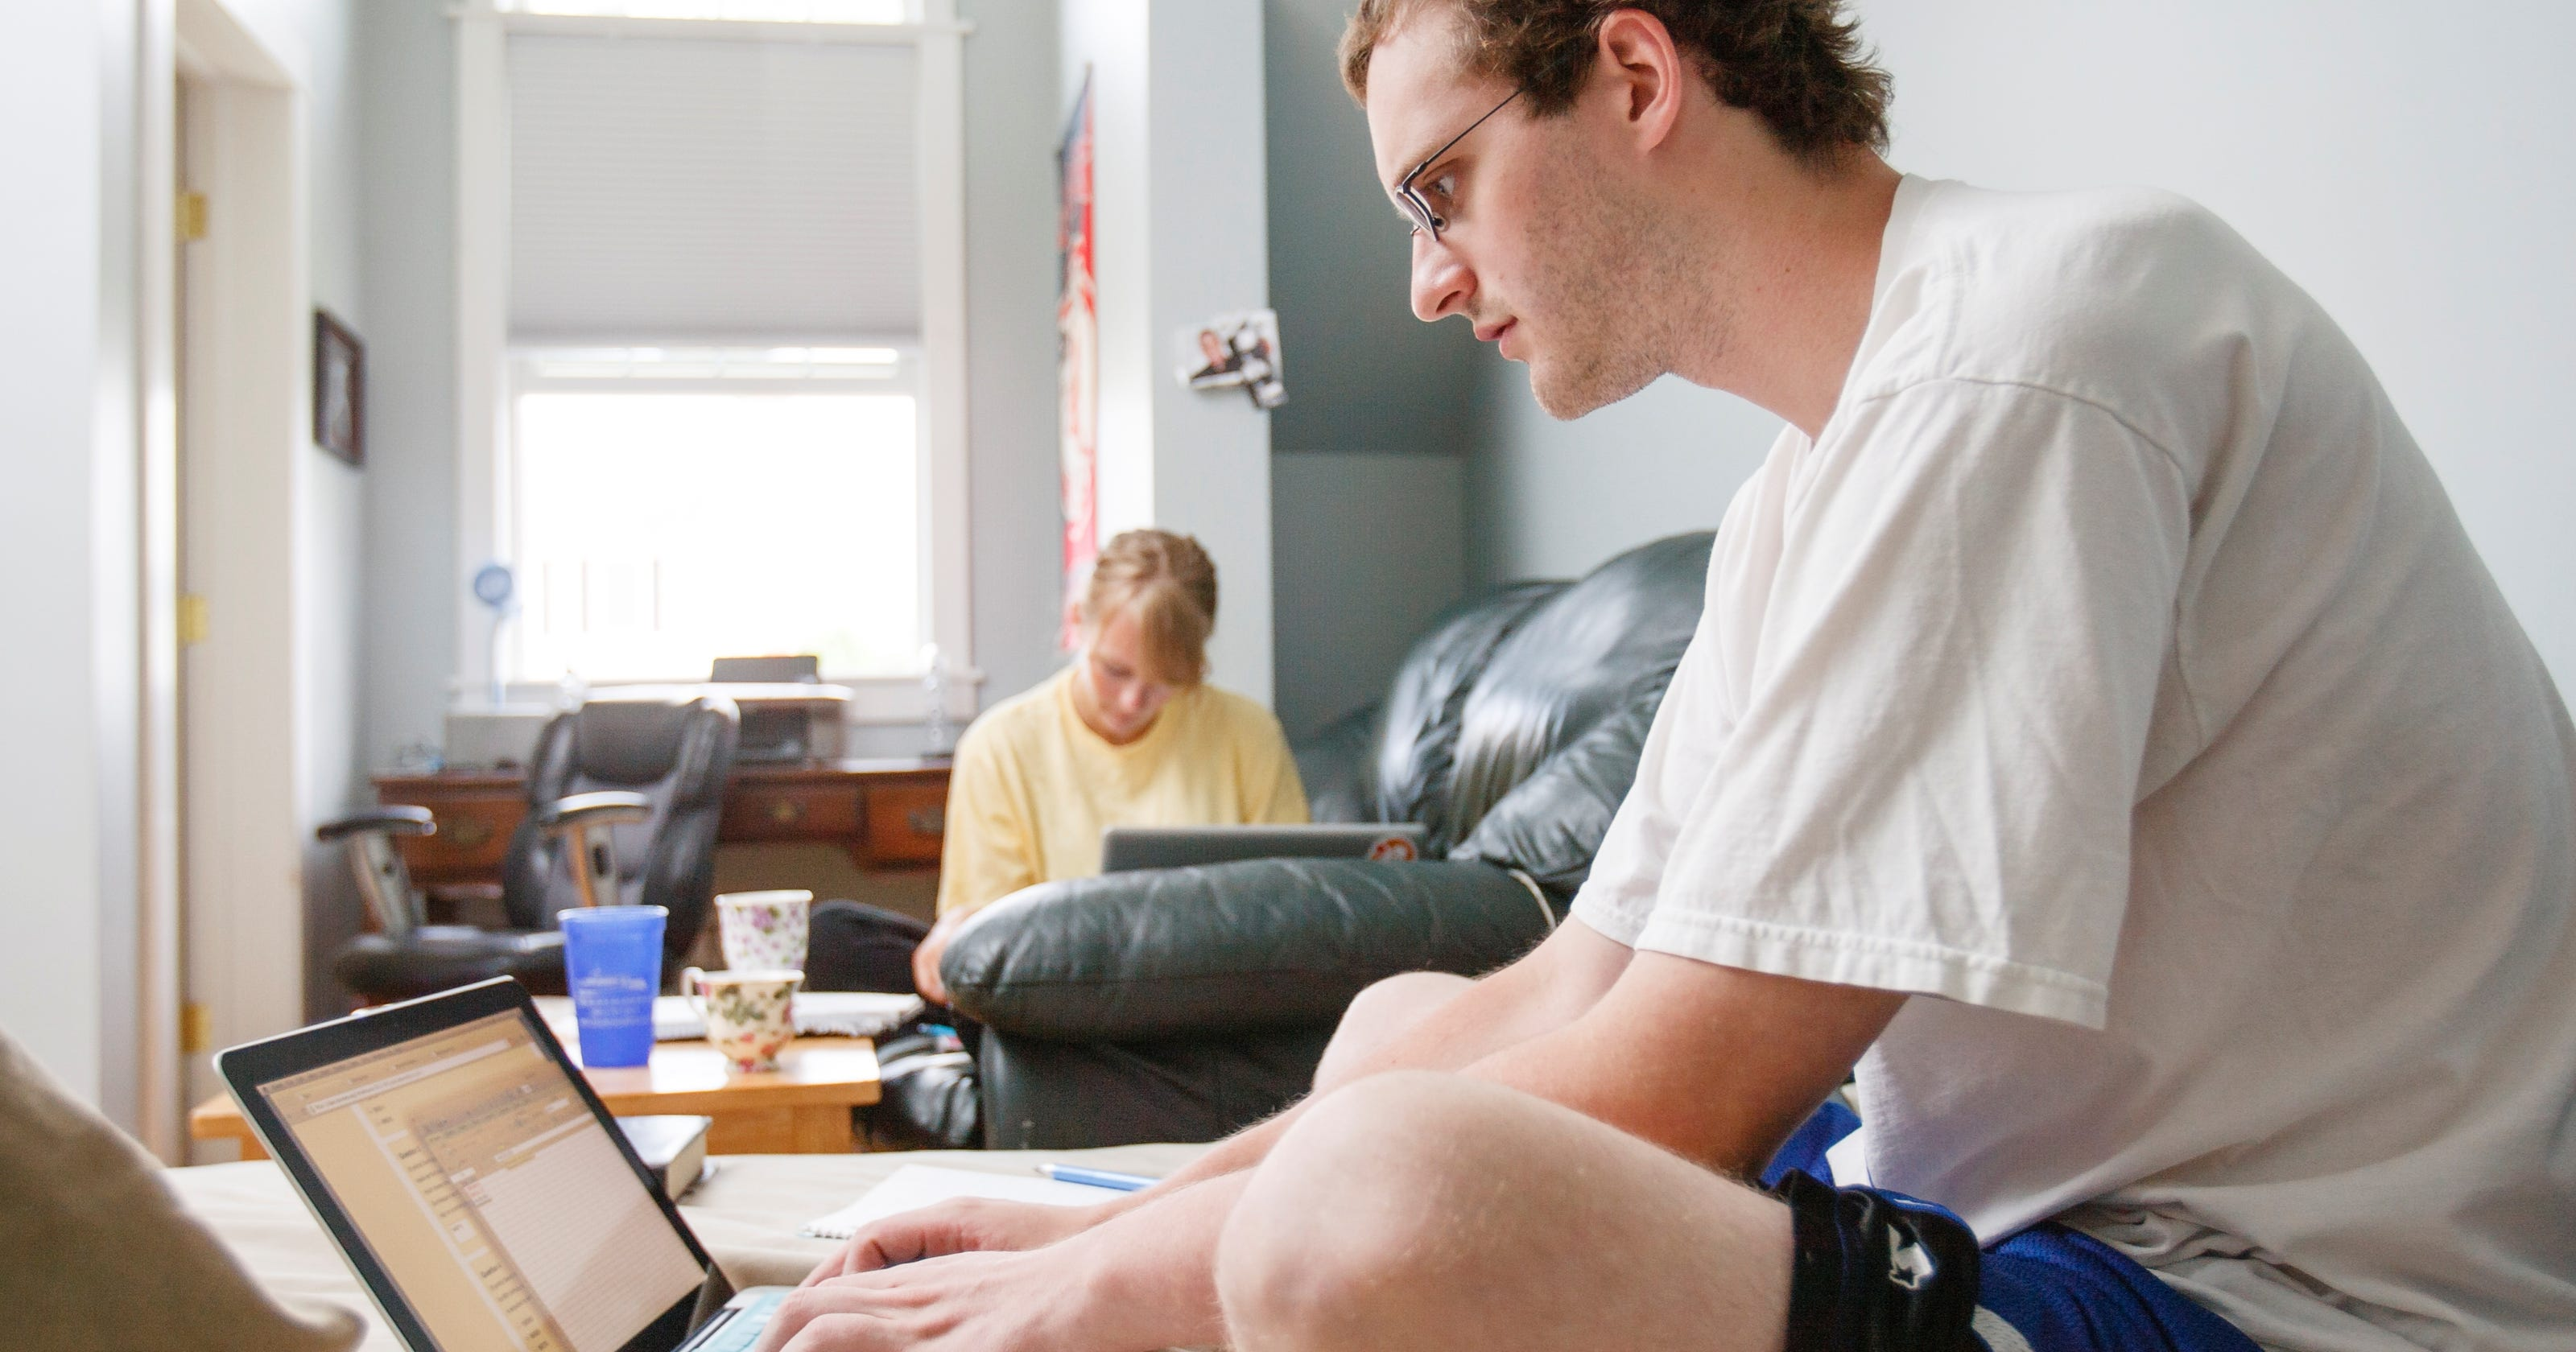 study students prefer real classrooms over virtual